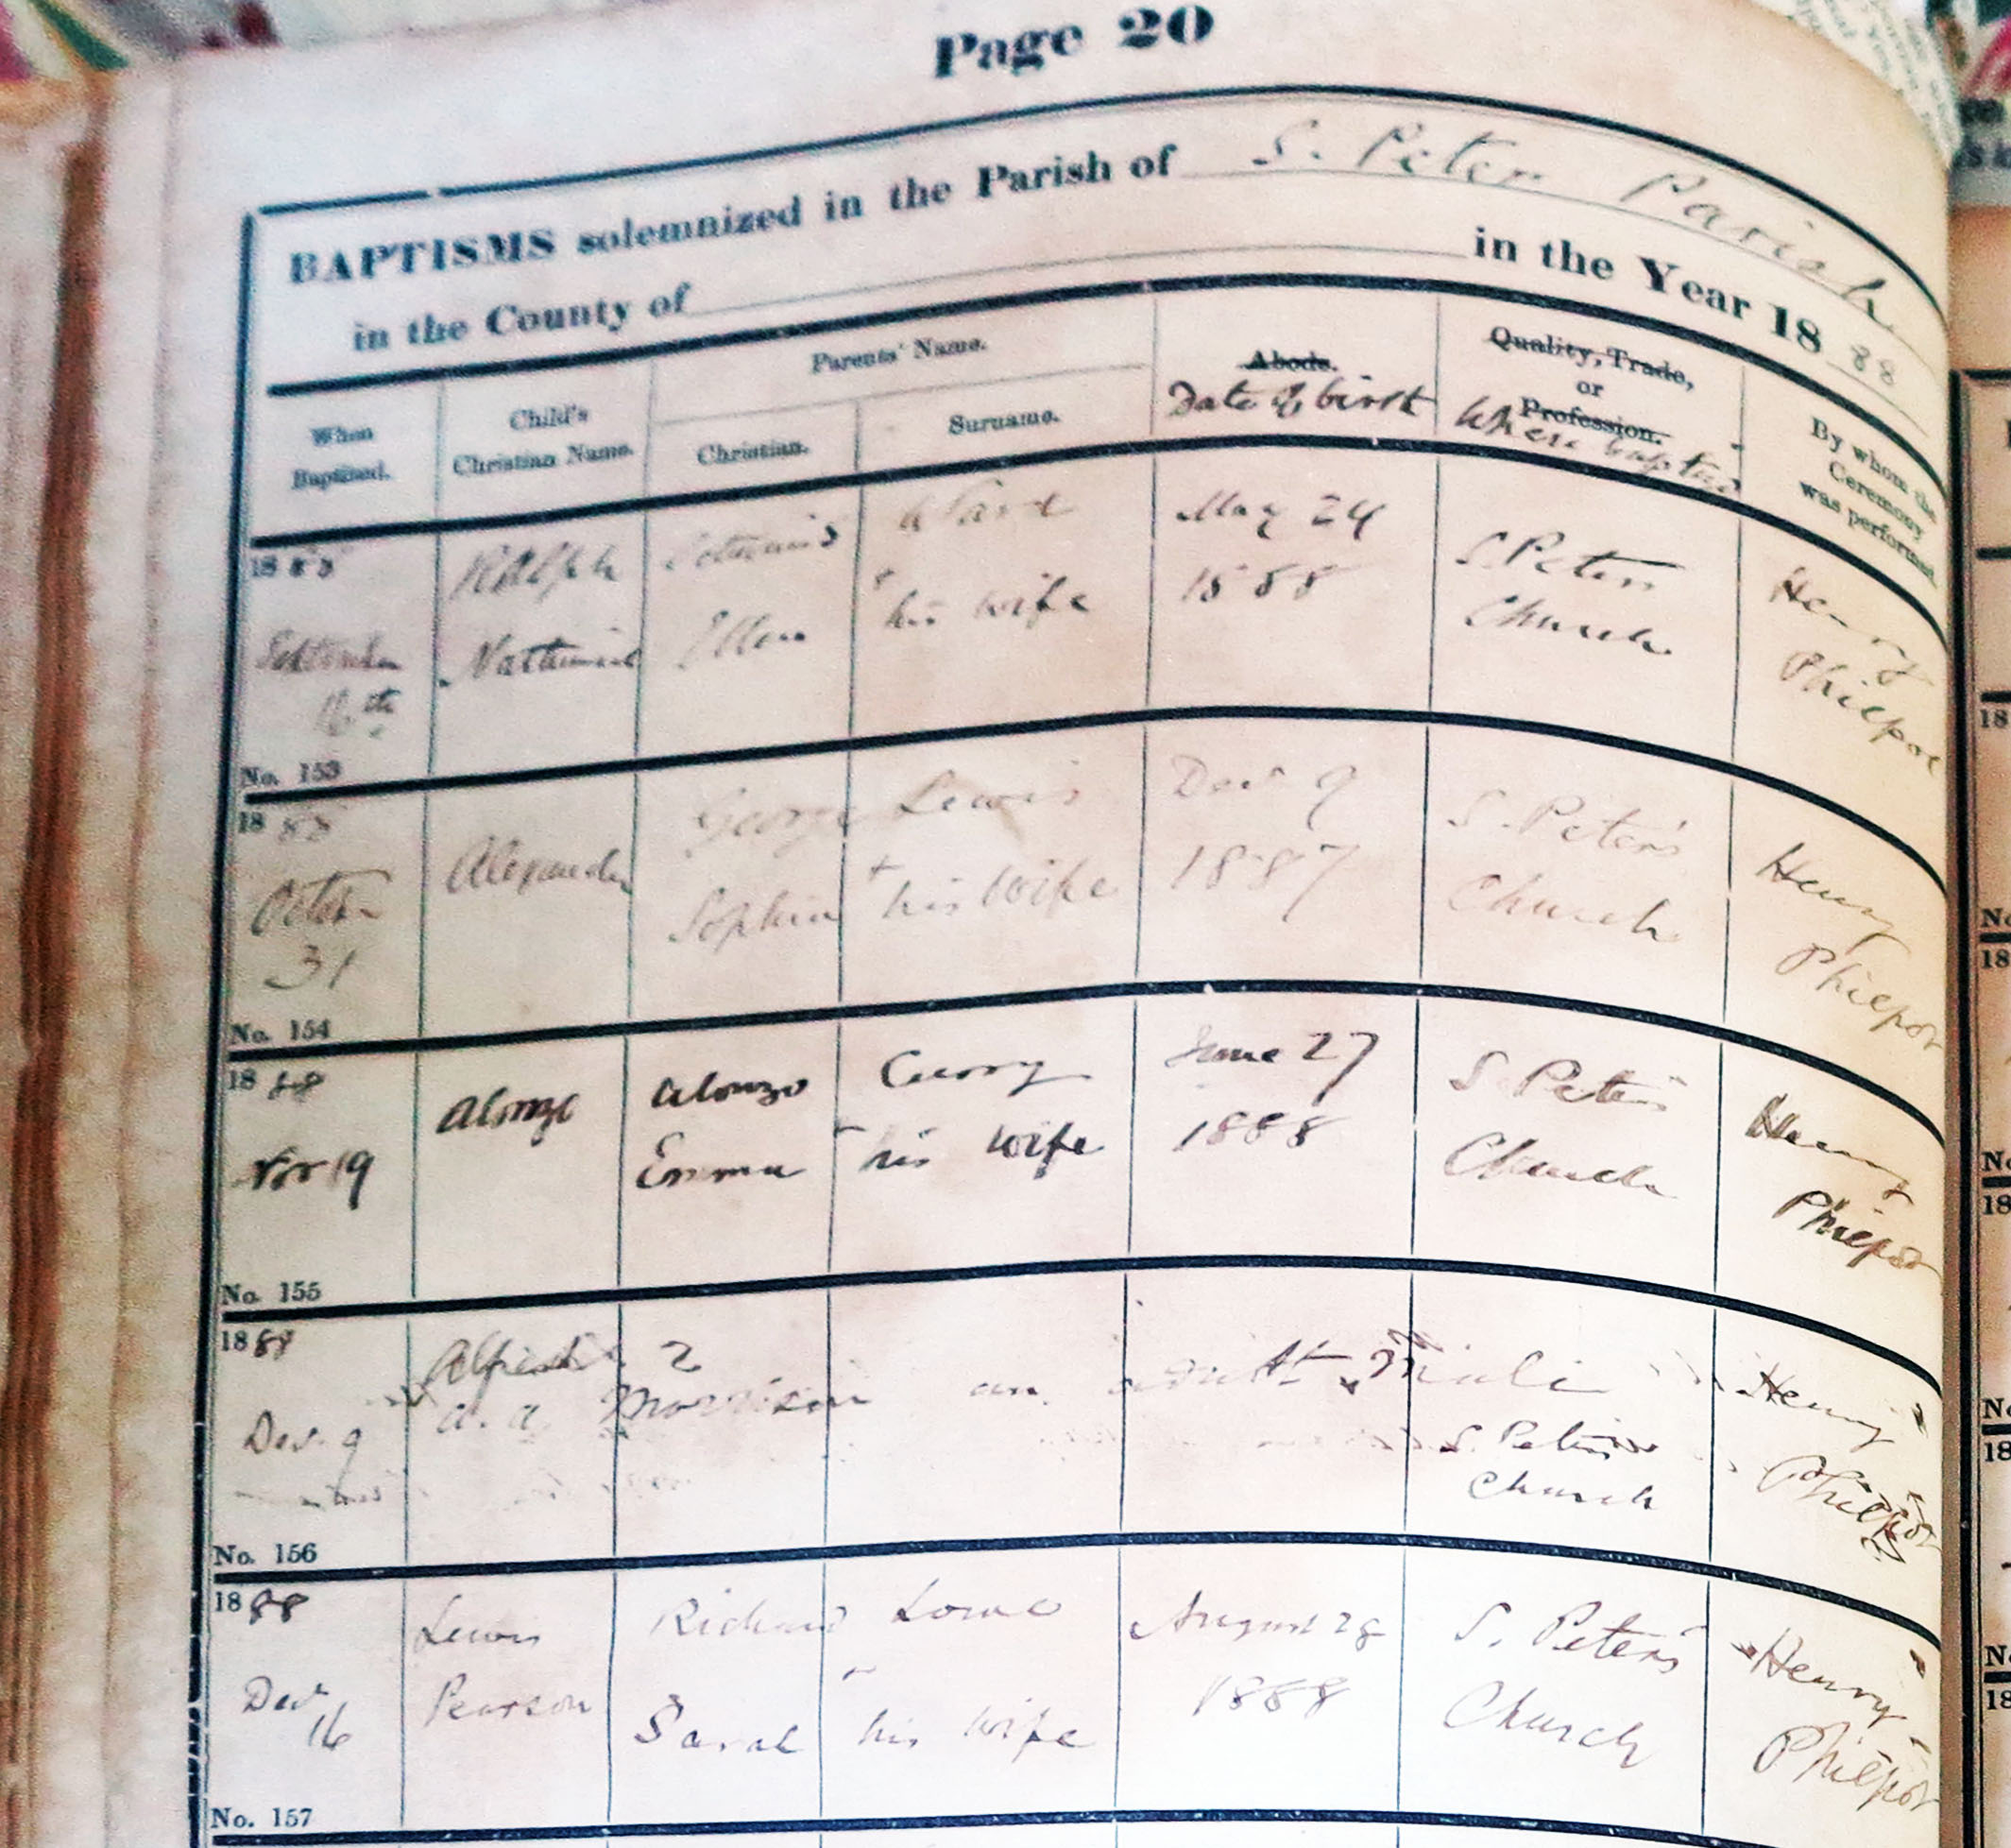 Baptism Record for Lewis Pearson Lowe - December 1888